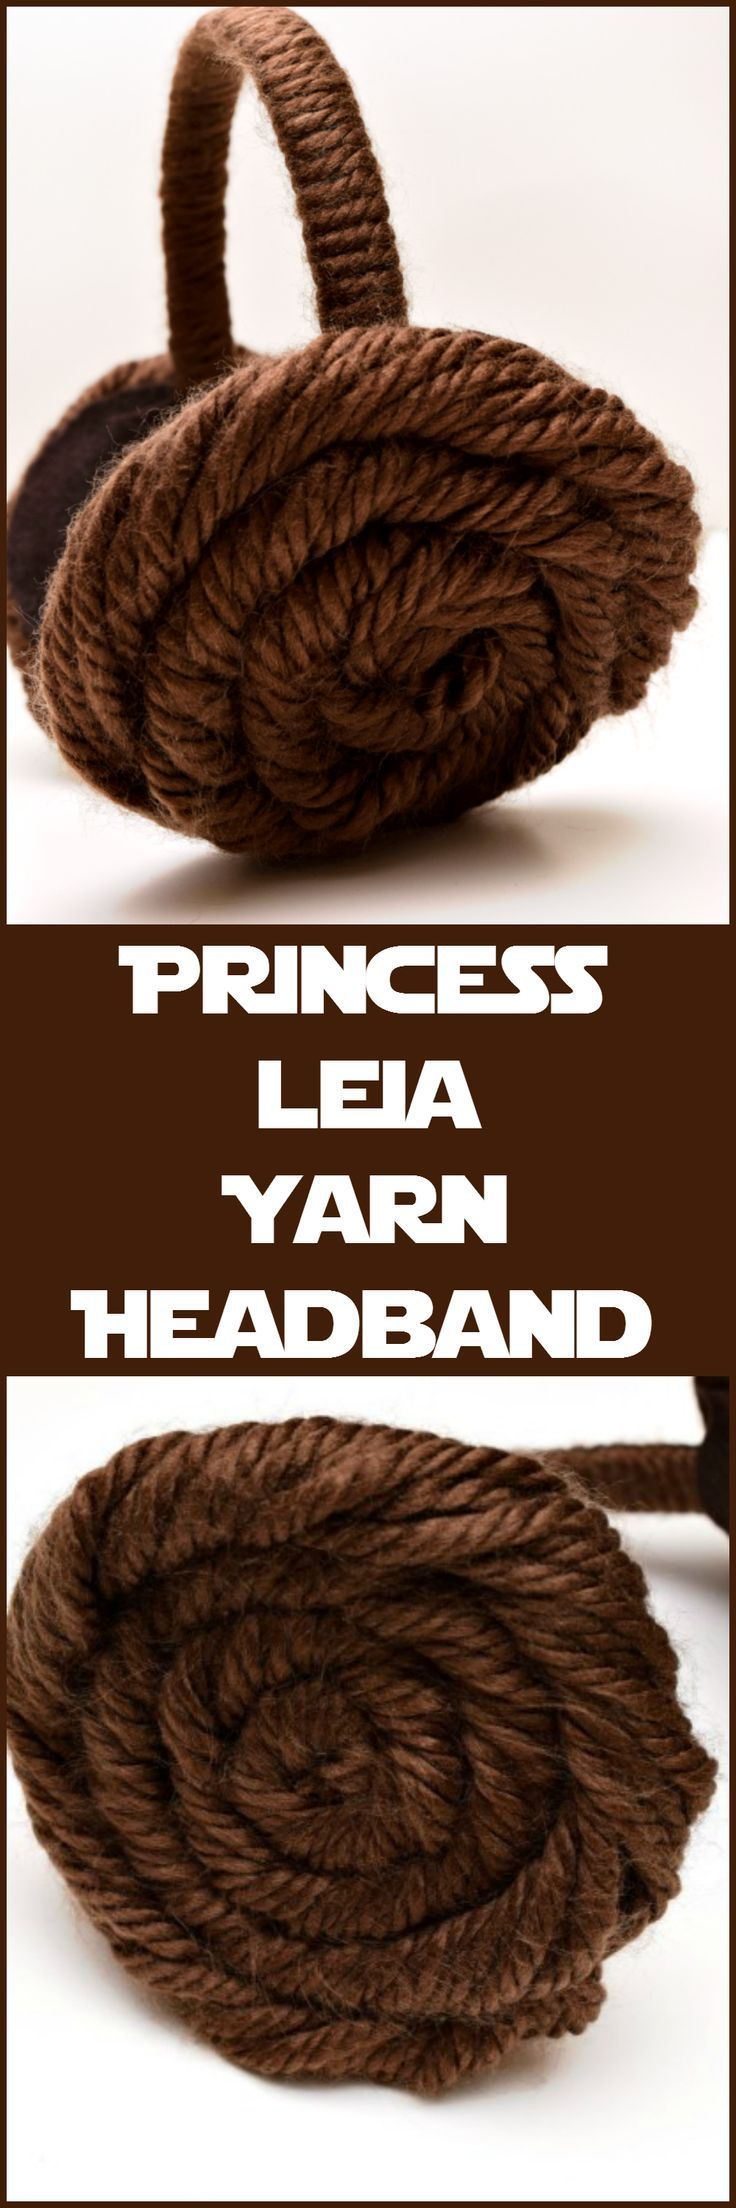 Princess Leia Yarn Headband. The perfect addition to your Star Wars costume! Easy DIY instructions and supply list included along with step by step photos.